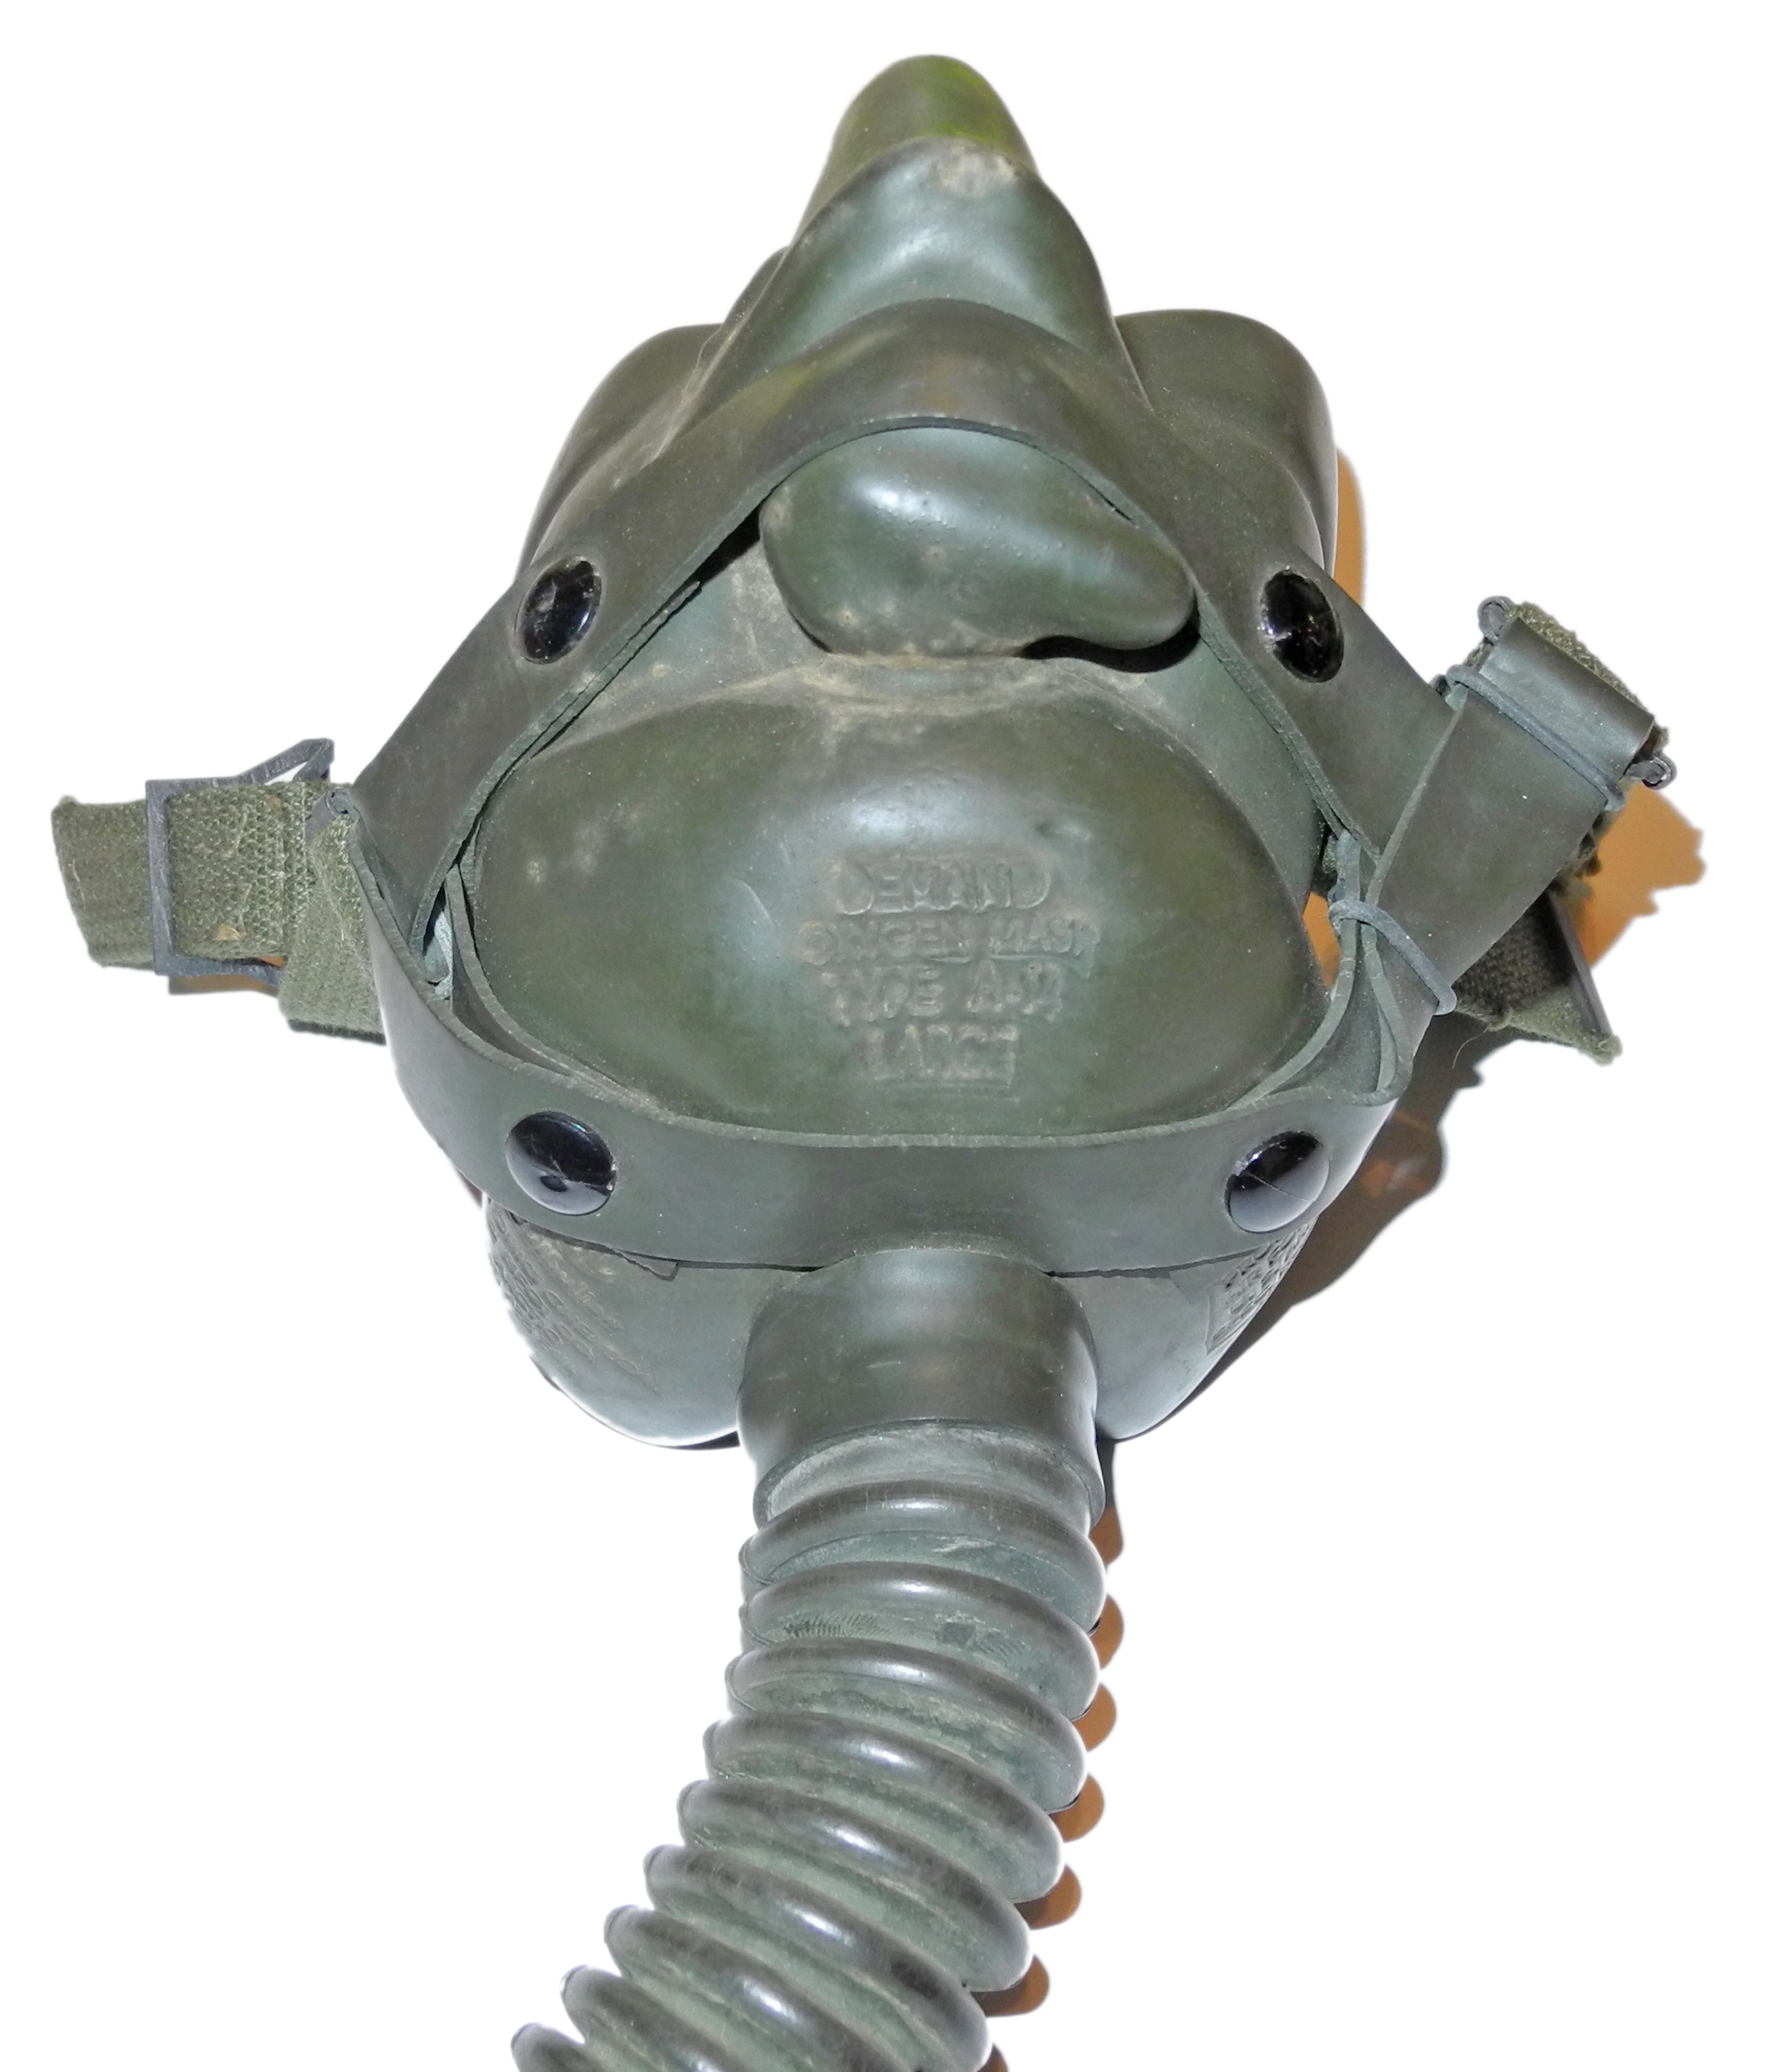 AAF Type A-14 oxygen mask